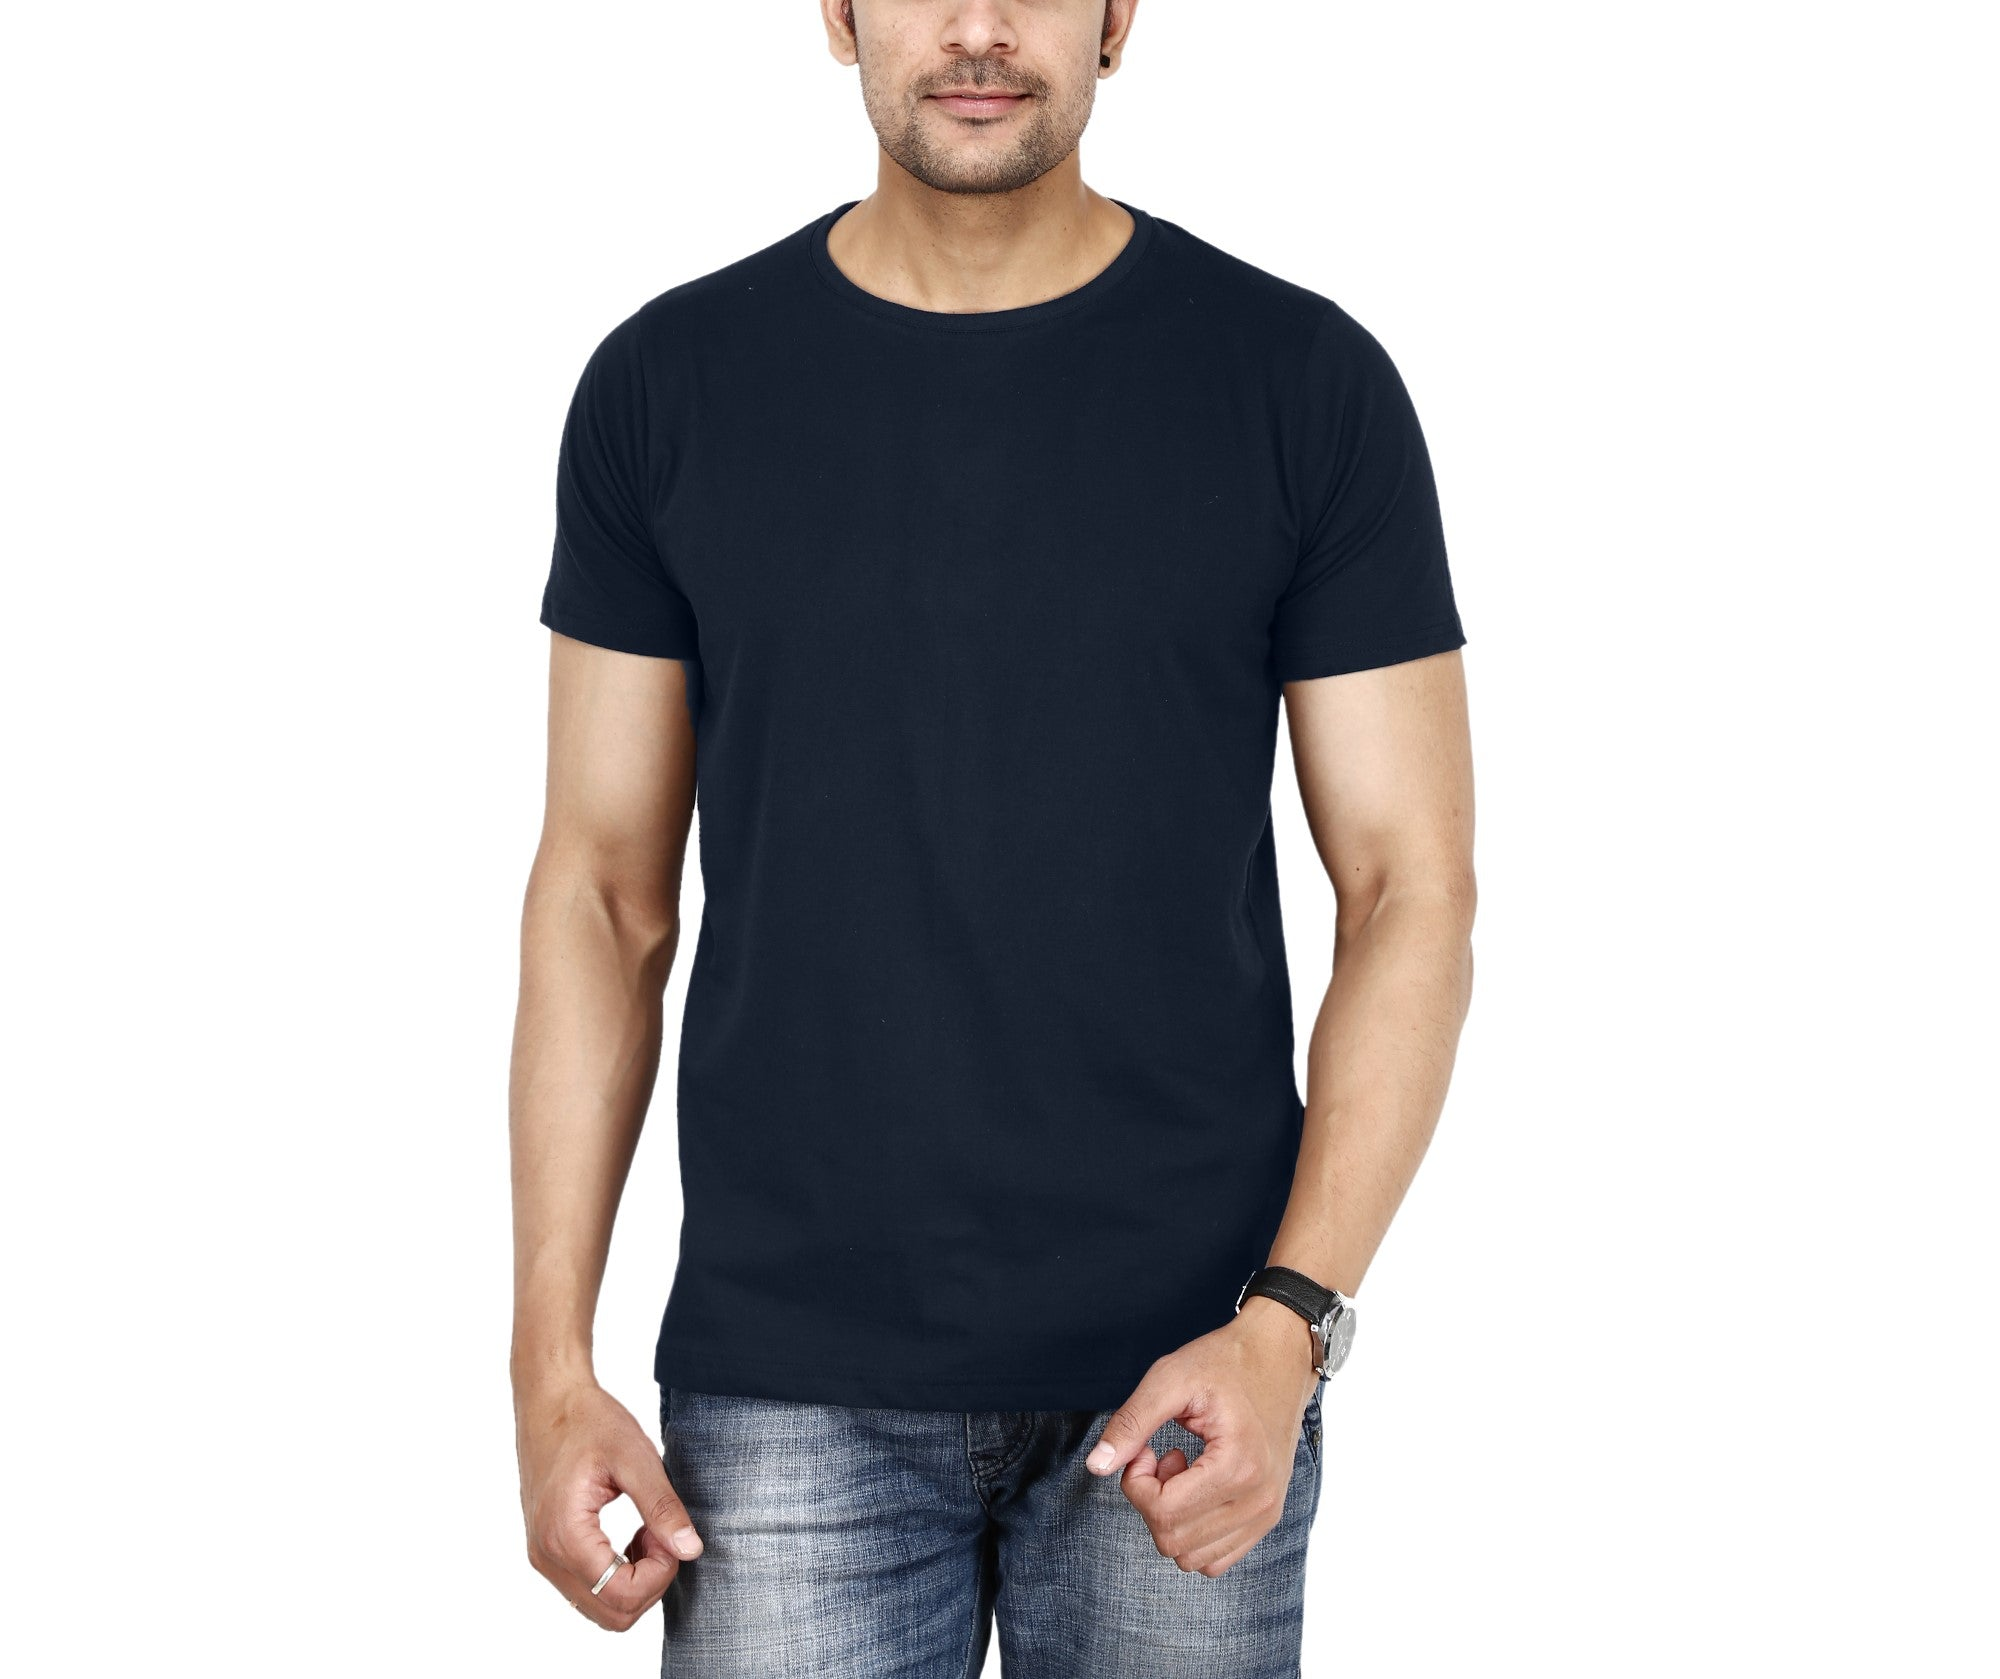 11c553511 Lazychunks.com Plan Navy Blue t-shirt for mens , Half sleeves tshirt ...